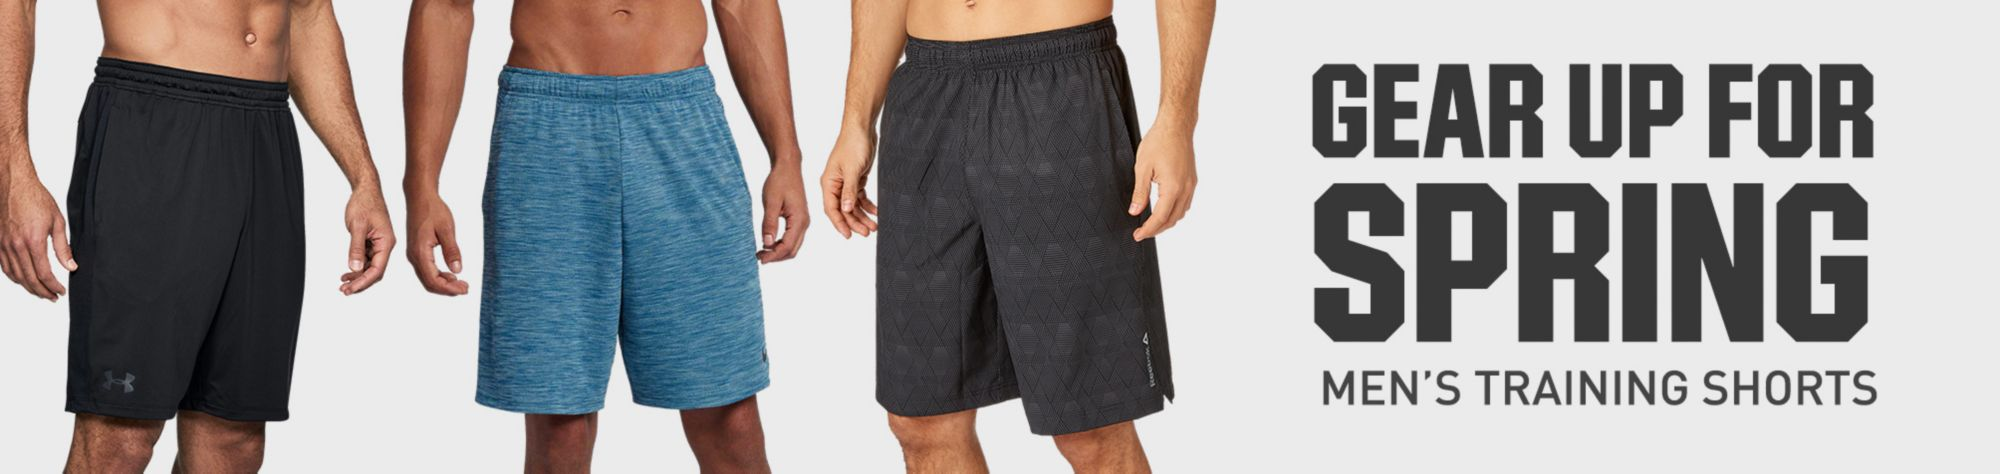 Gear Up for Spring Men's Training Shorts